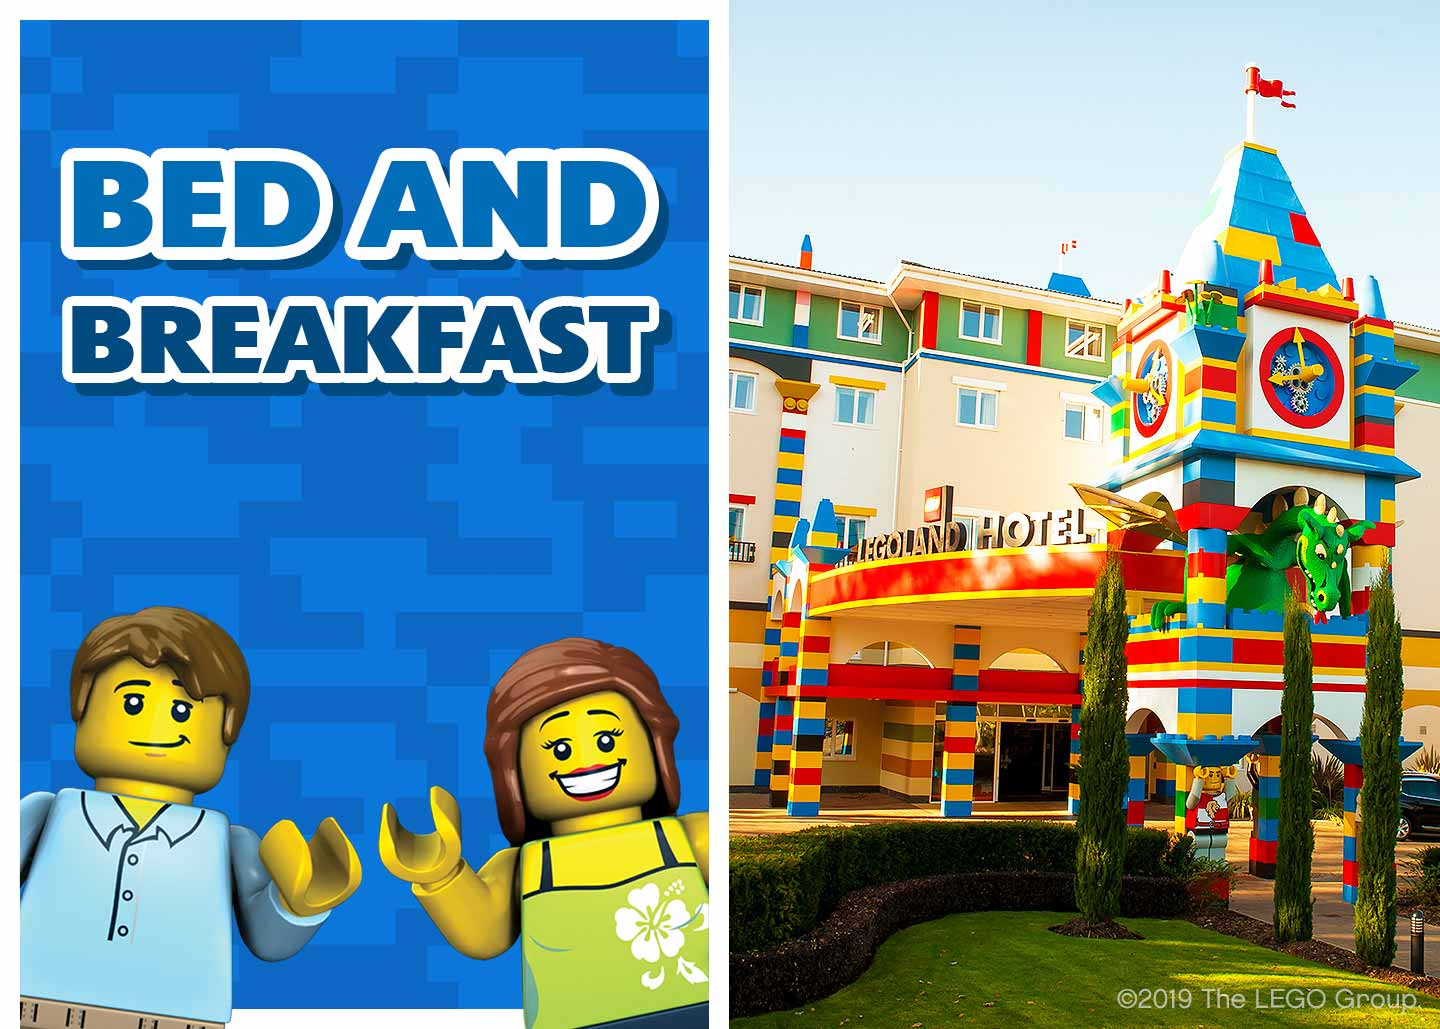 LEGOLAND Resort Hotel bed and breakfast